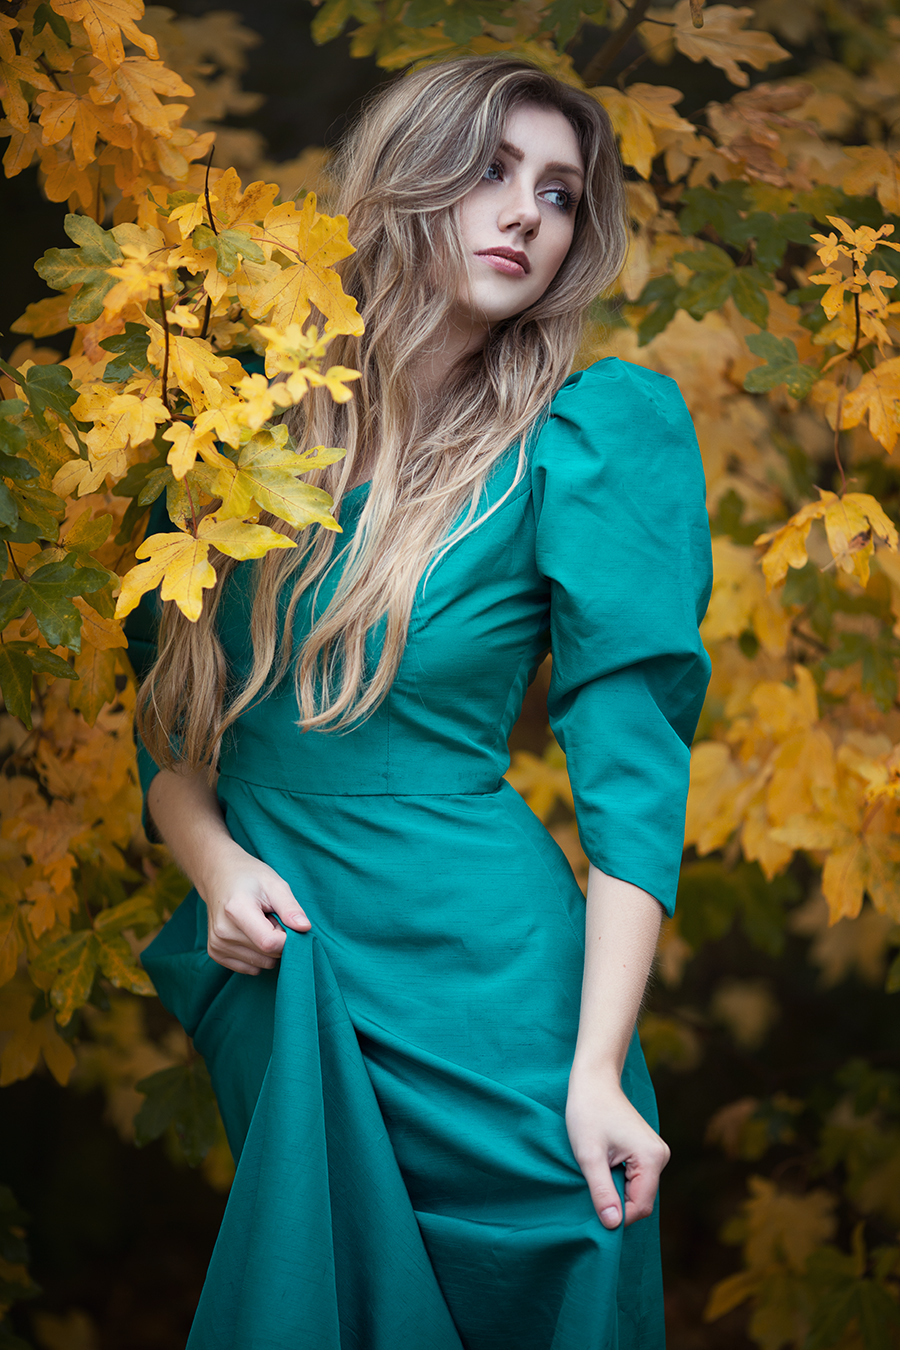 Autumn Rain - Miss Hyde - 2016 / Photography by Anjelica Hyde, Model Shannon Thorne / Uploaded 4th January 2017 @ 10:15 PM